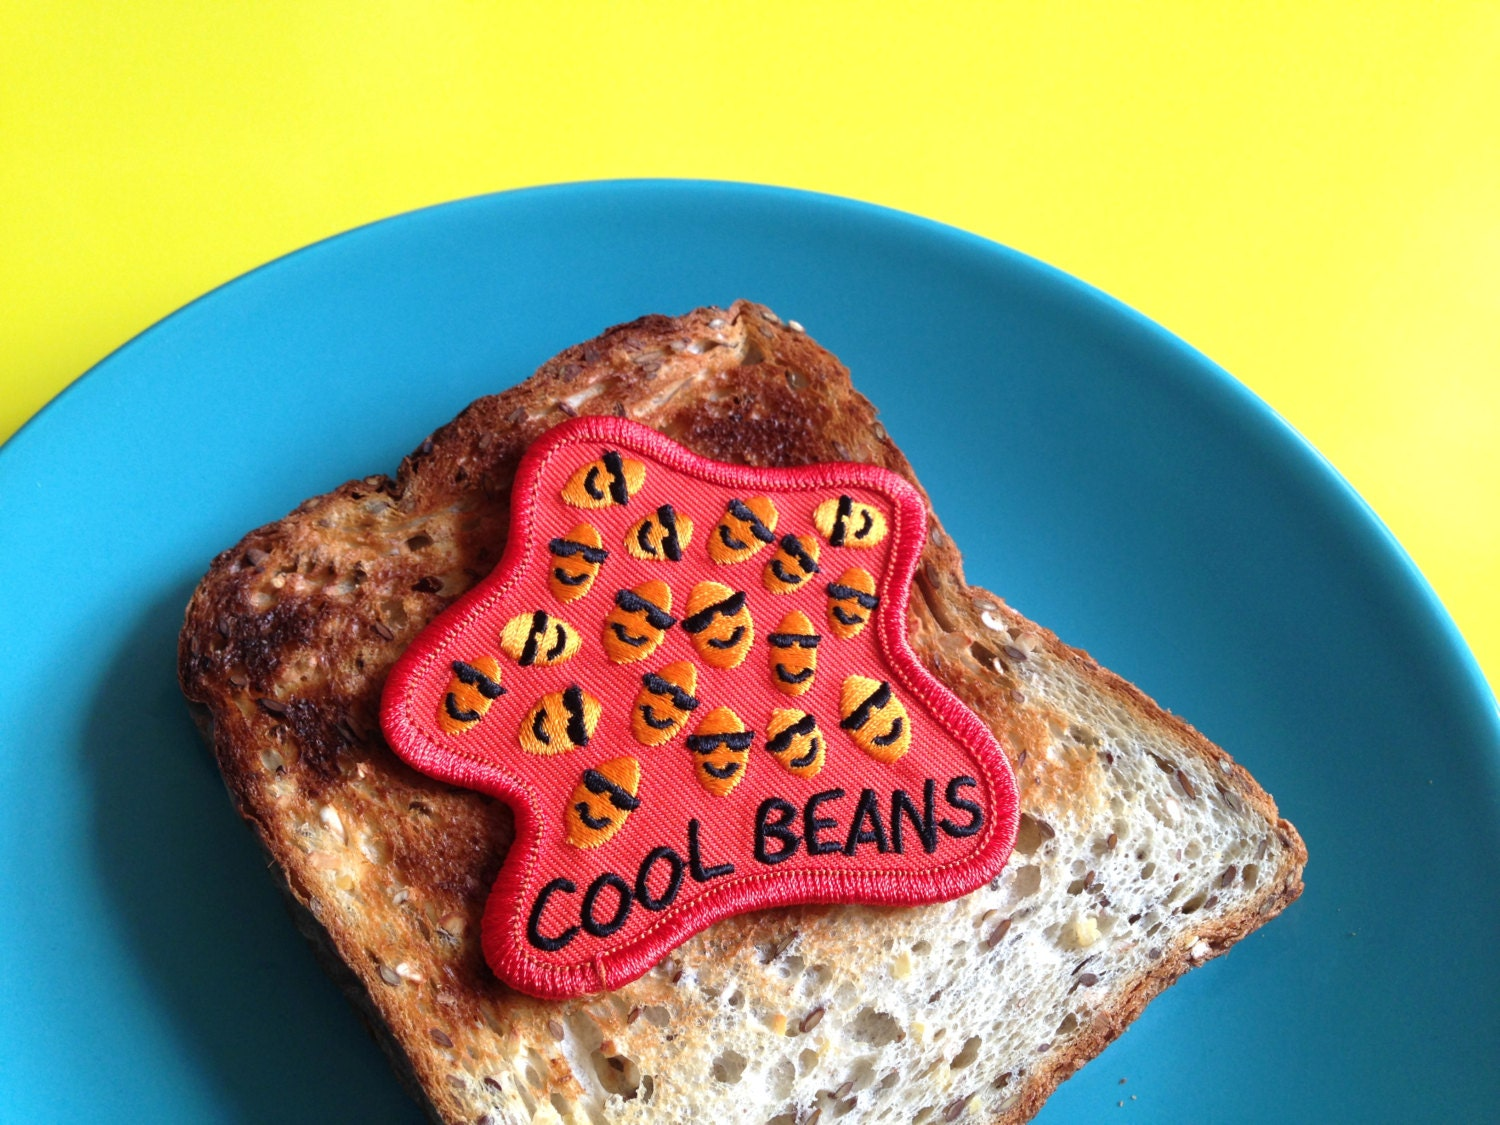 Cool beans patch funny embroidered iron on sew